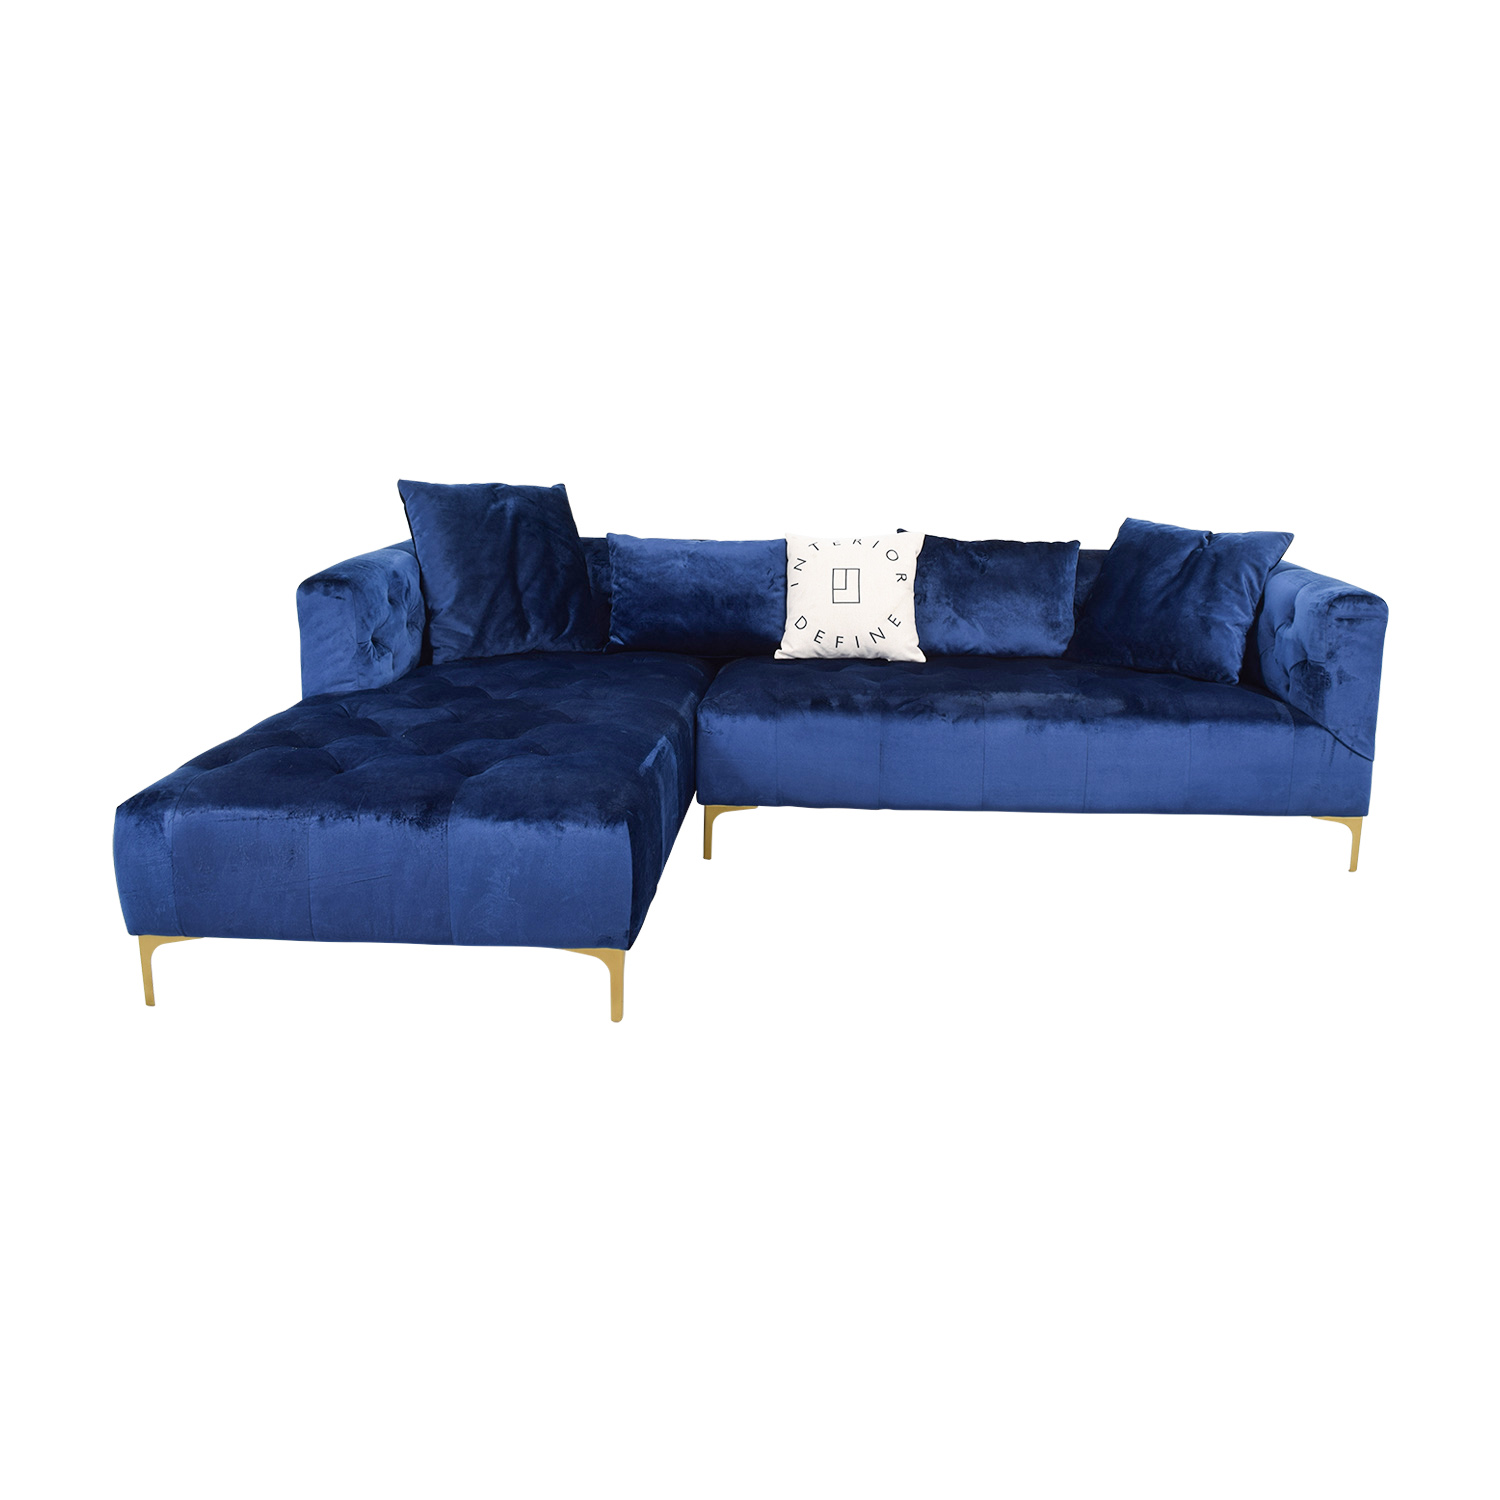 Ms. Chesterfield Blue Tufted Left Chaise Sectional dimensions